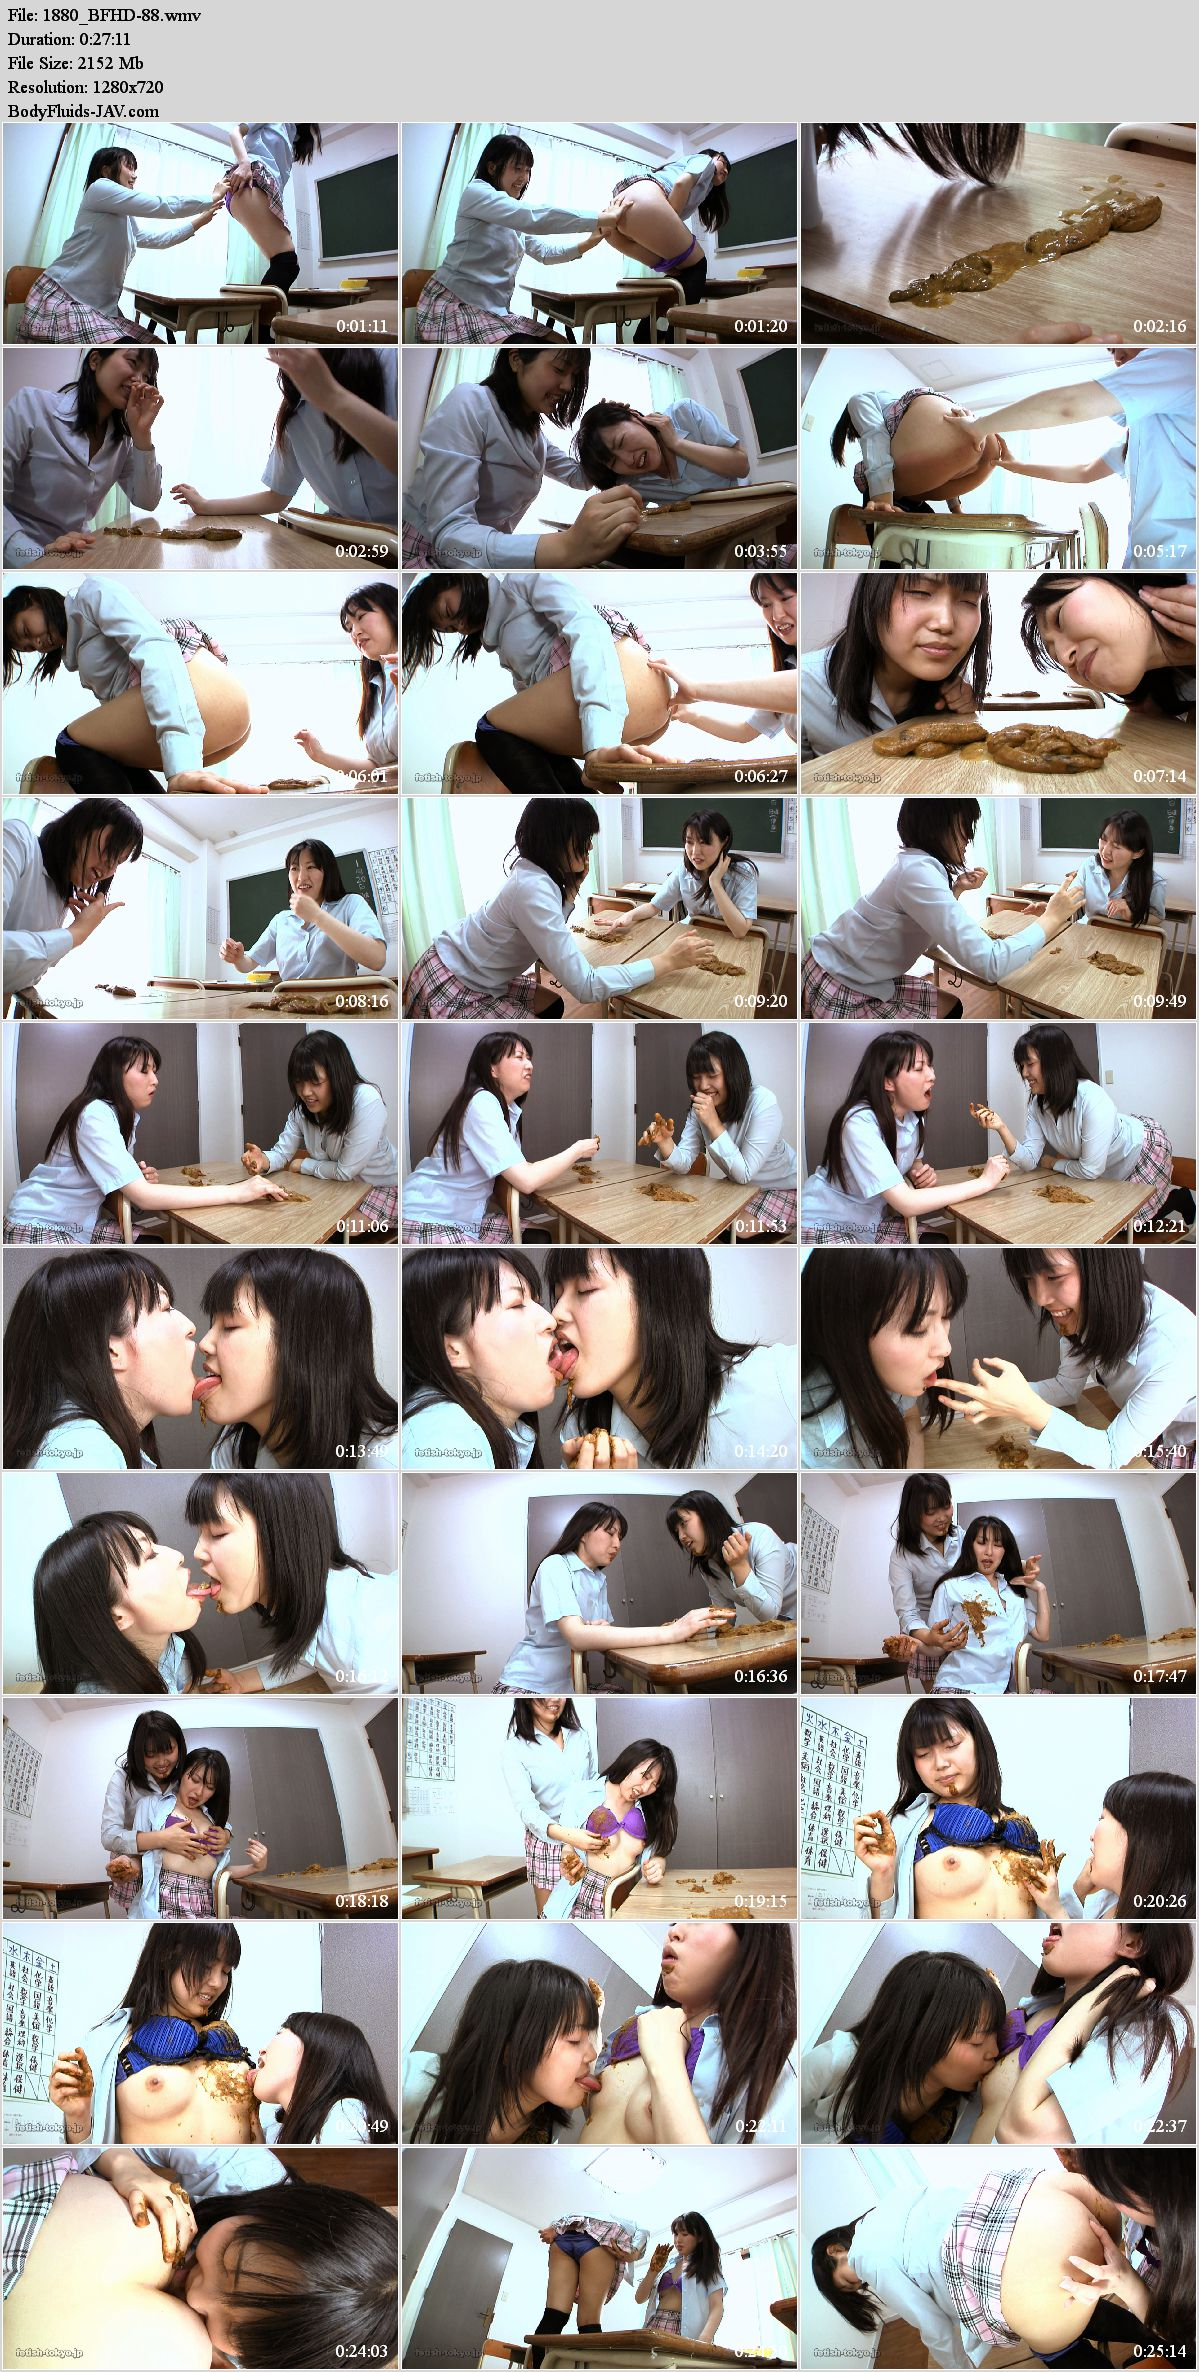 BFHD-88 Schoolgirls lesbians scat play during the lesson. (HD 720p)